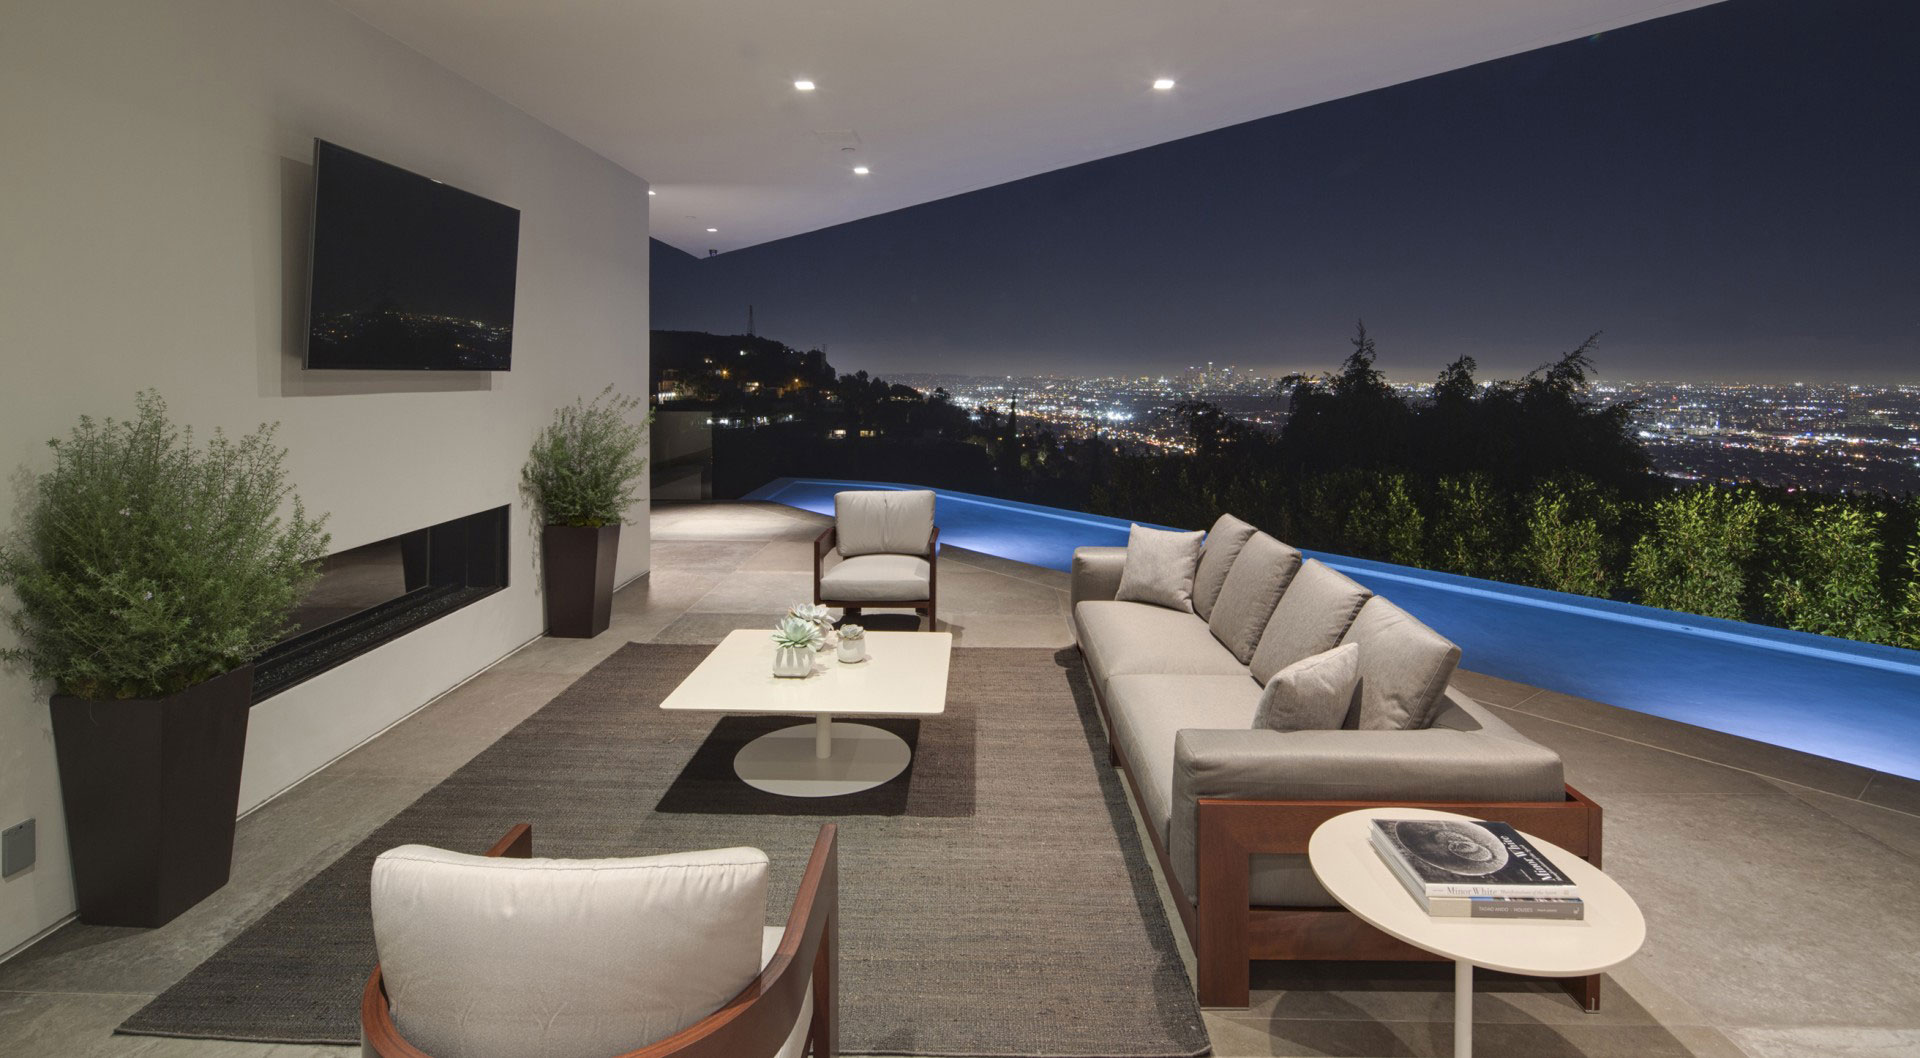 Spectacular Home View - A dramatic glass home overlooking the l a basin